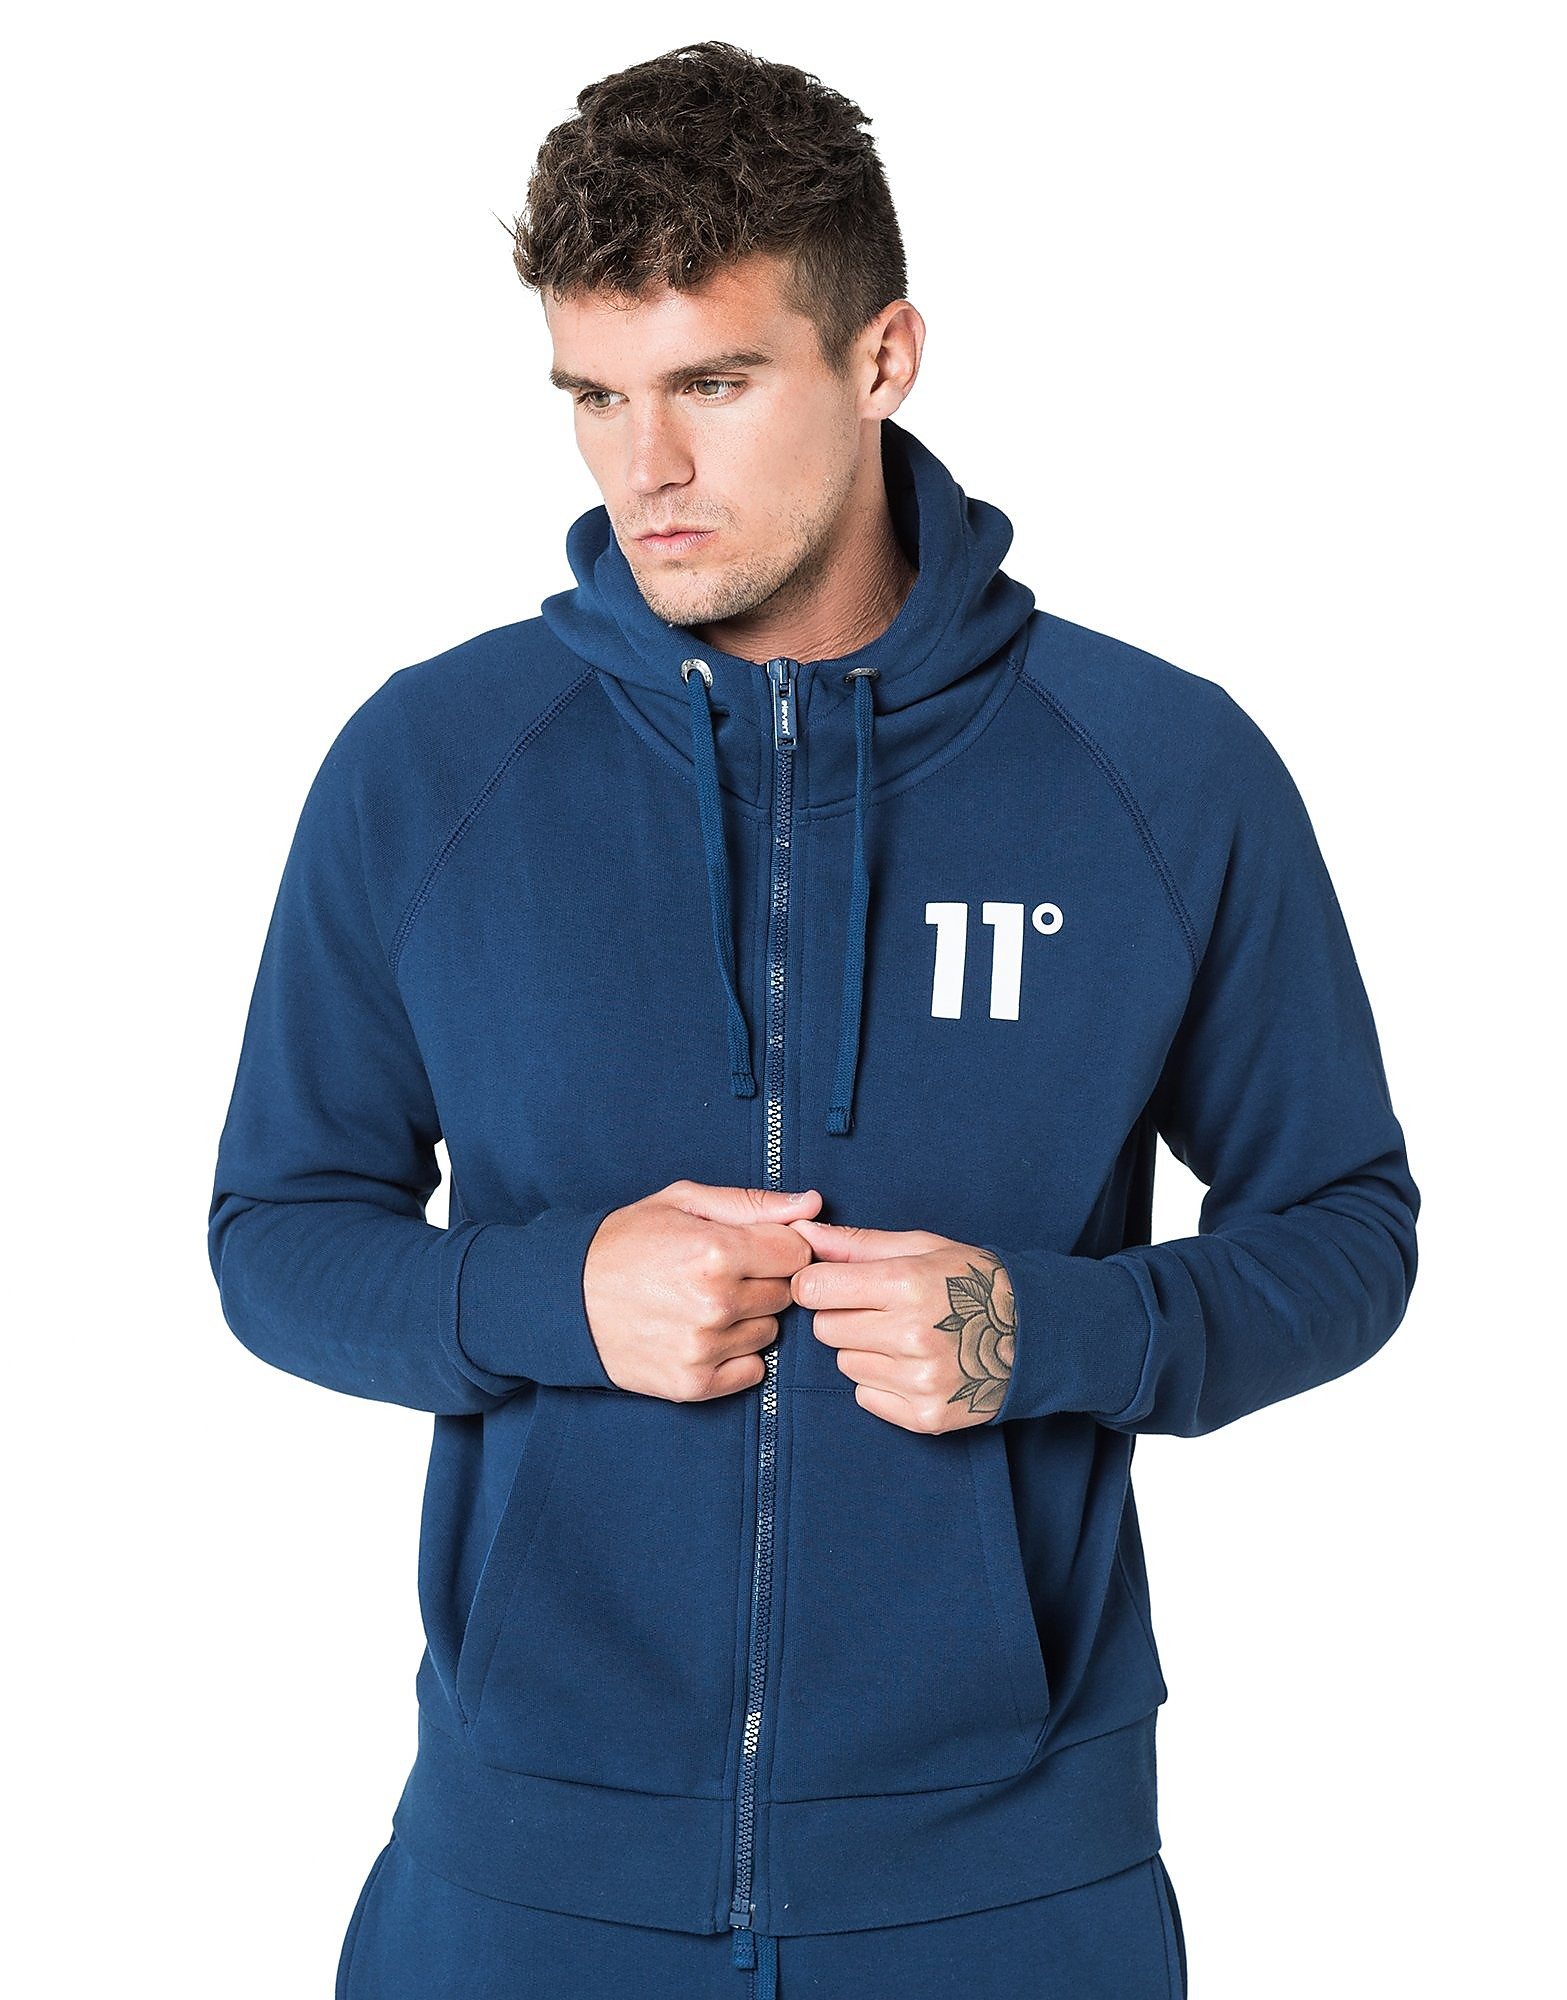 Image de 11 Degrees Sweat Core Homme - Navy, Navy